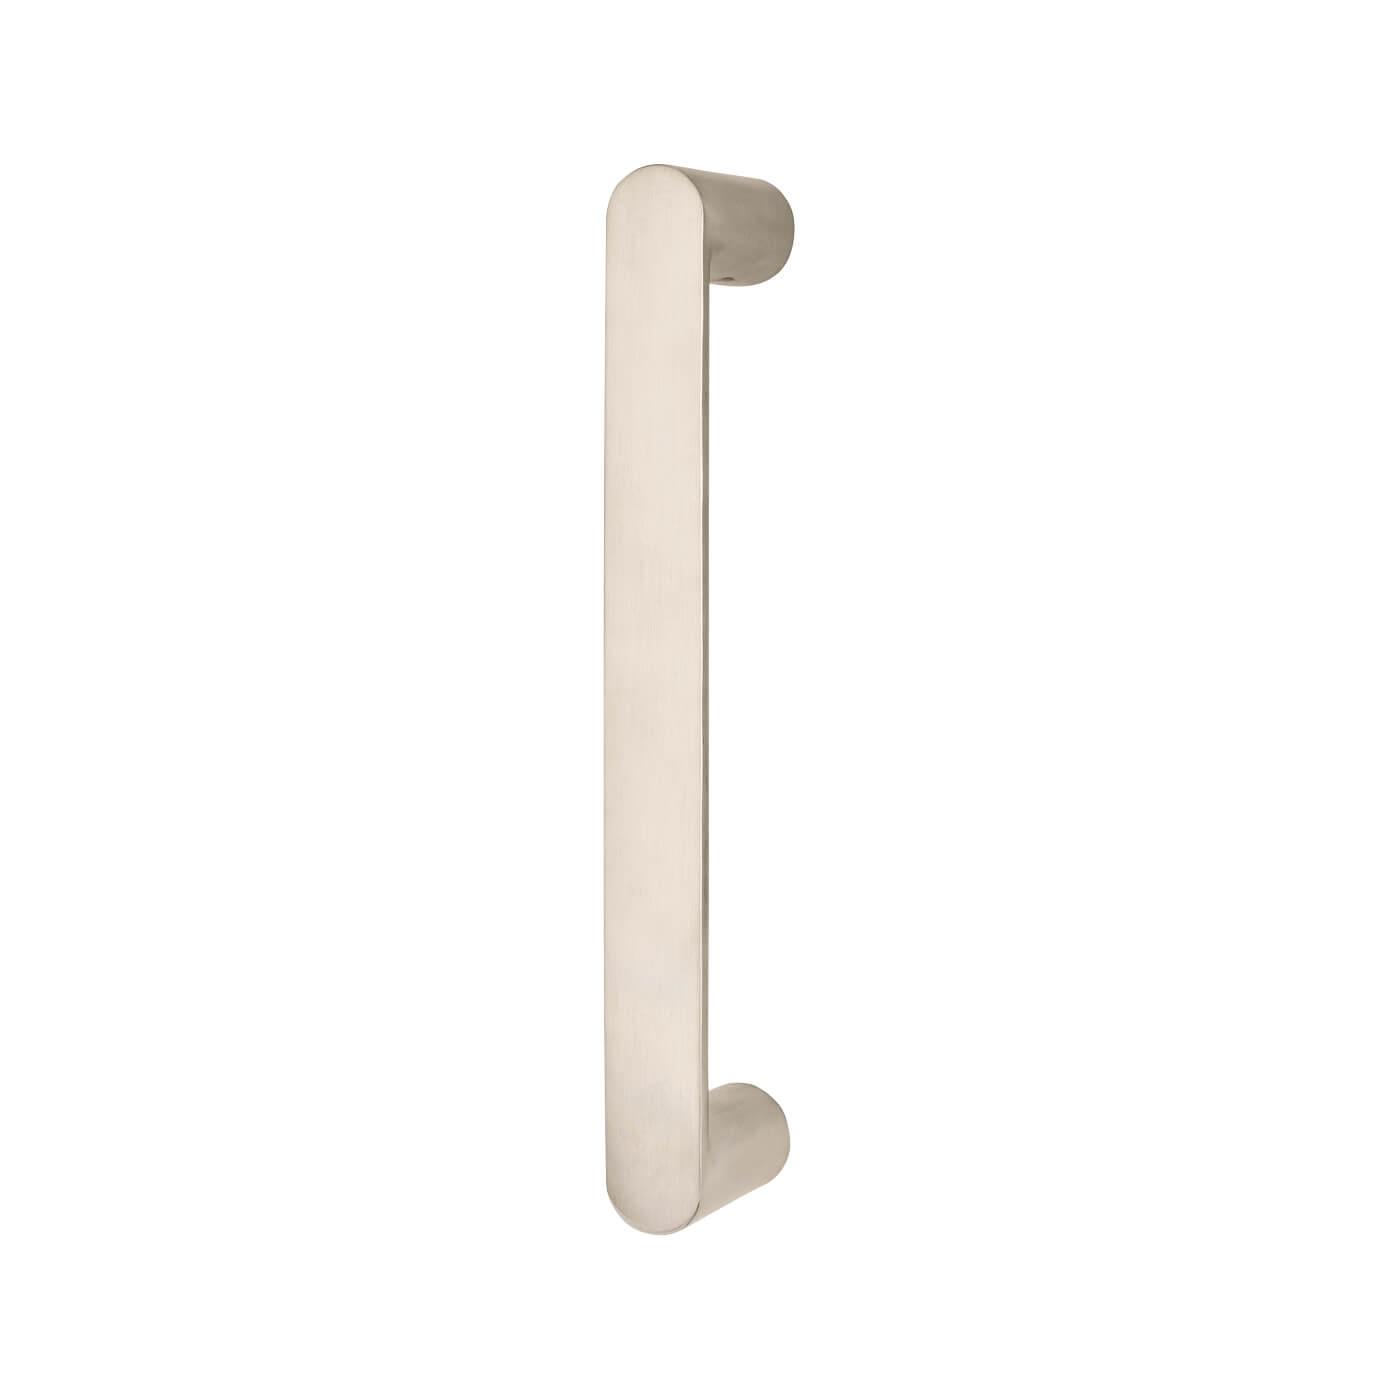 A-Spec Bolt Fix Planed Pull Handle - 250mm Centres - 316 Satin Stainless Steel)